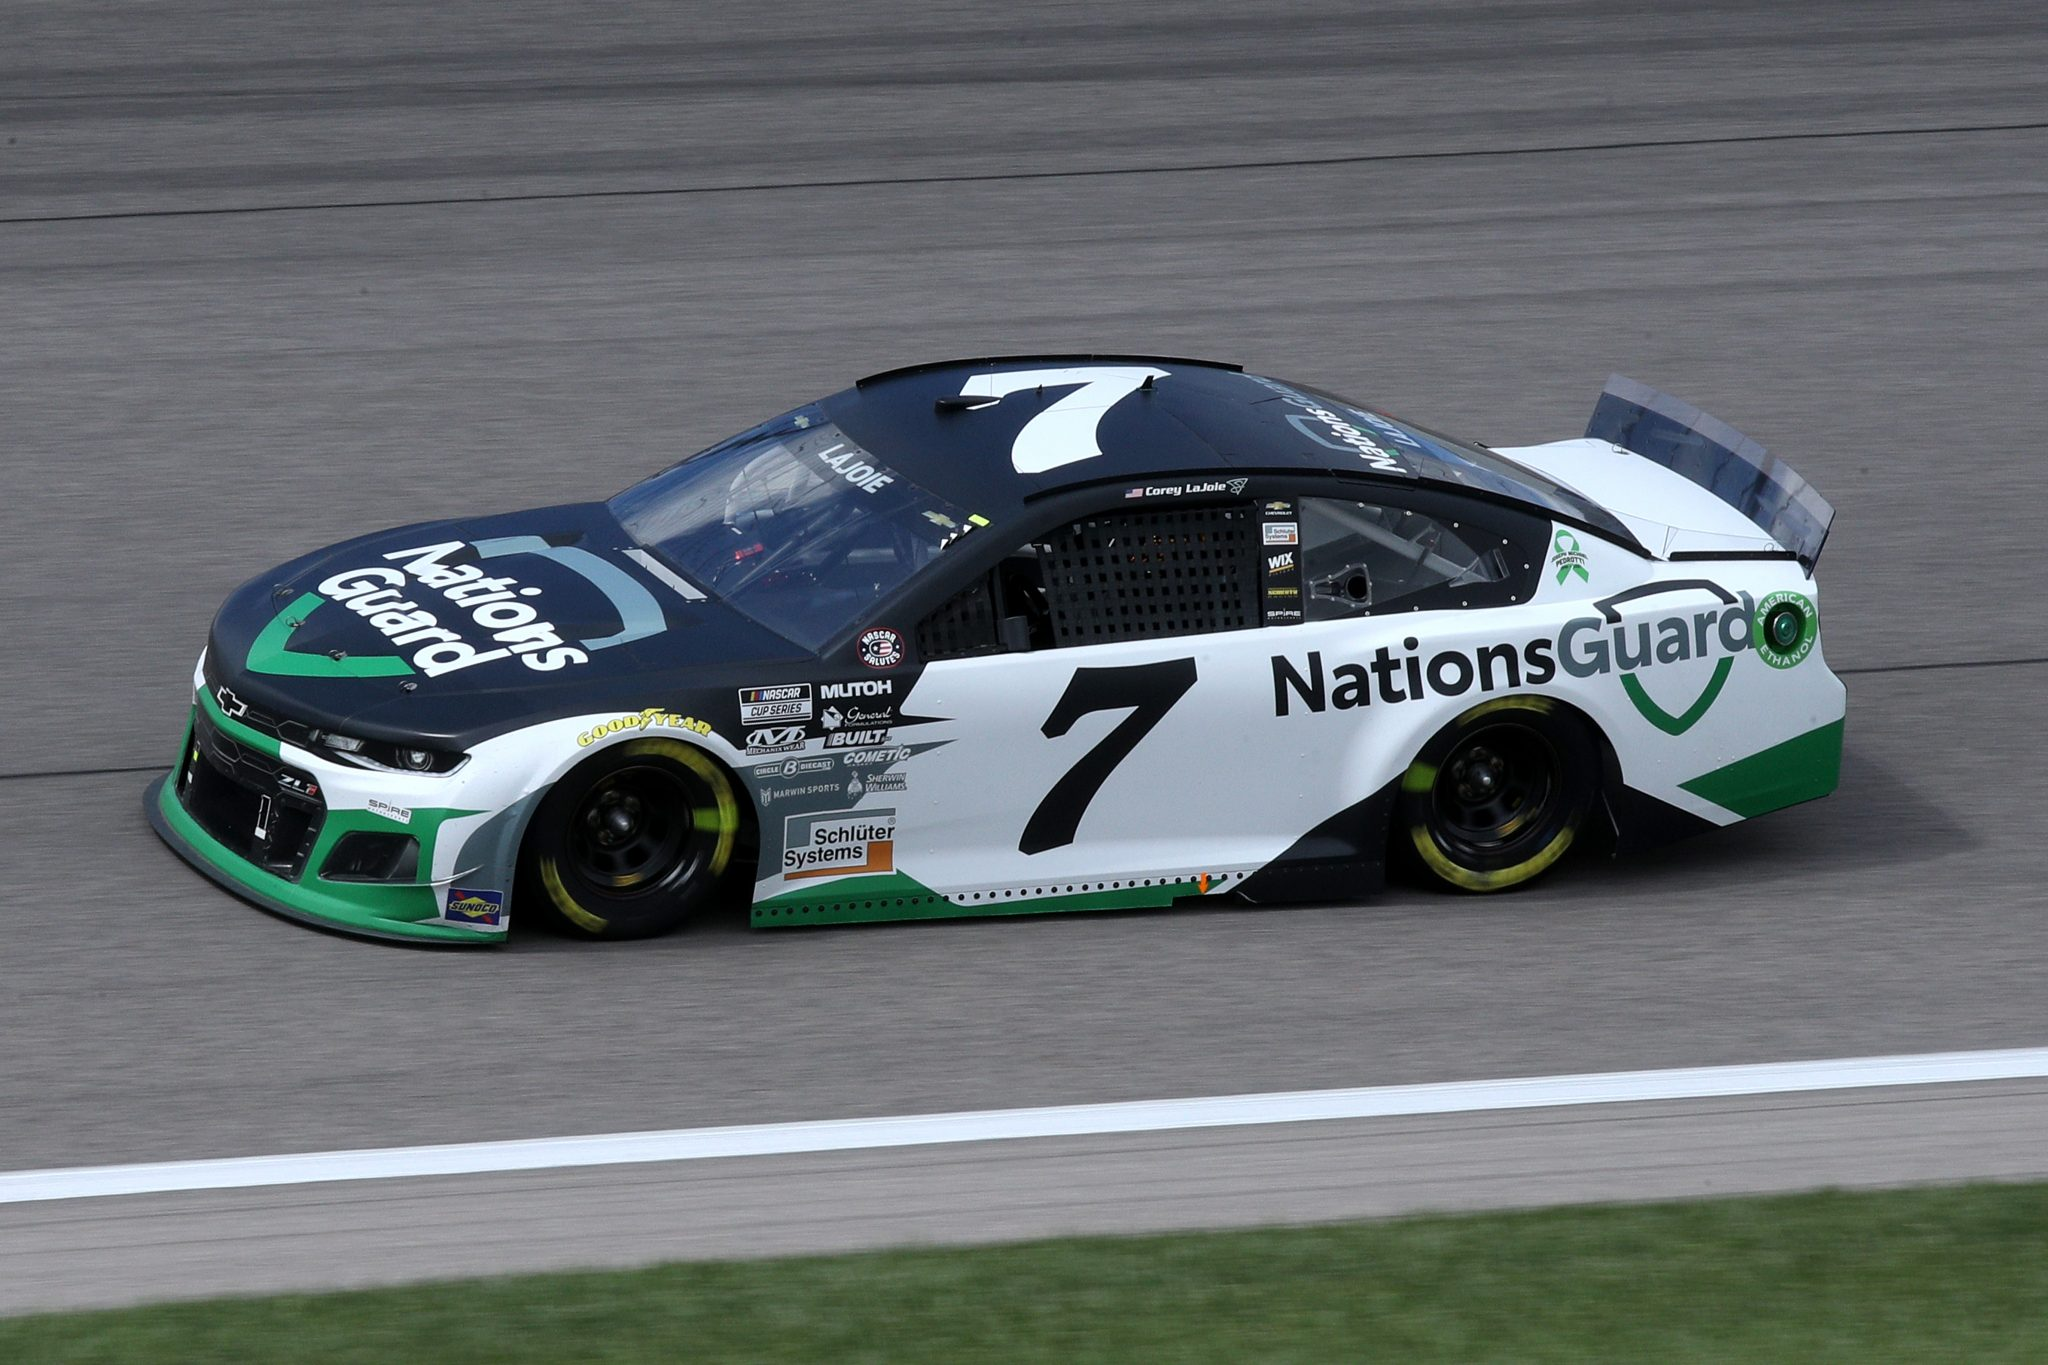 KANSAS CITY, KANSAS - MAY 02: Corey LaJoie, driver of the #7 Nations Guard Chevrolet, drives during the NASCAR Cup Series Buschy McBusch Race 400 at Kansas Speedway on May 02, 2021 in Kansas City, Kansas. (Photo by Sean Gardner/Getty Images) | Getty Images